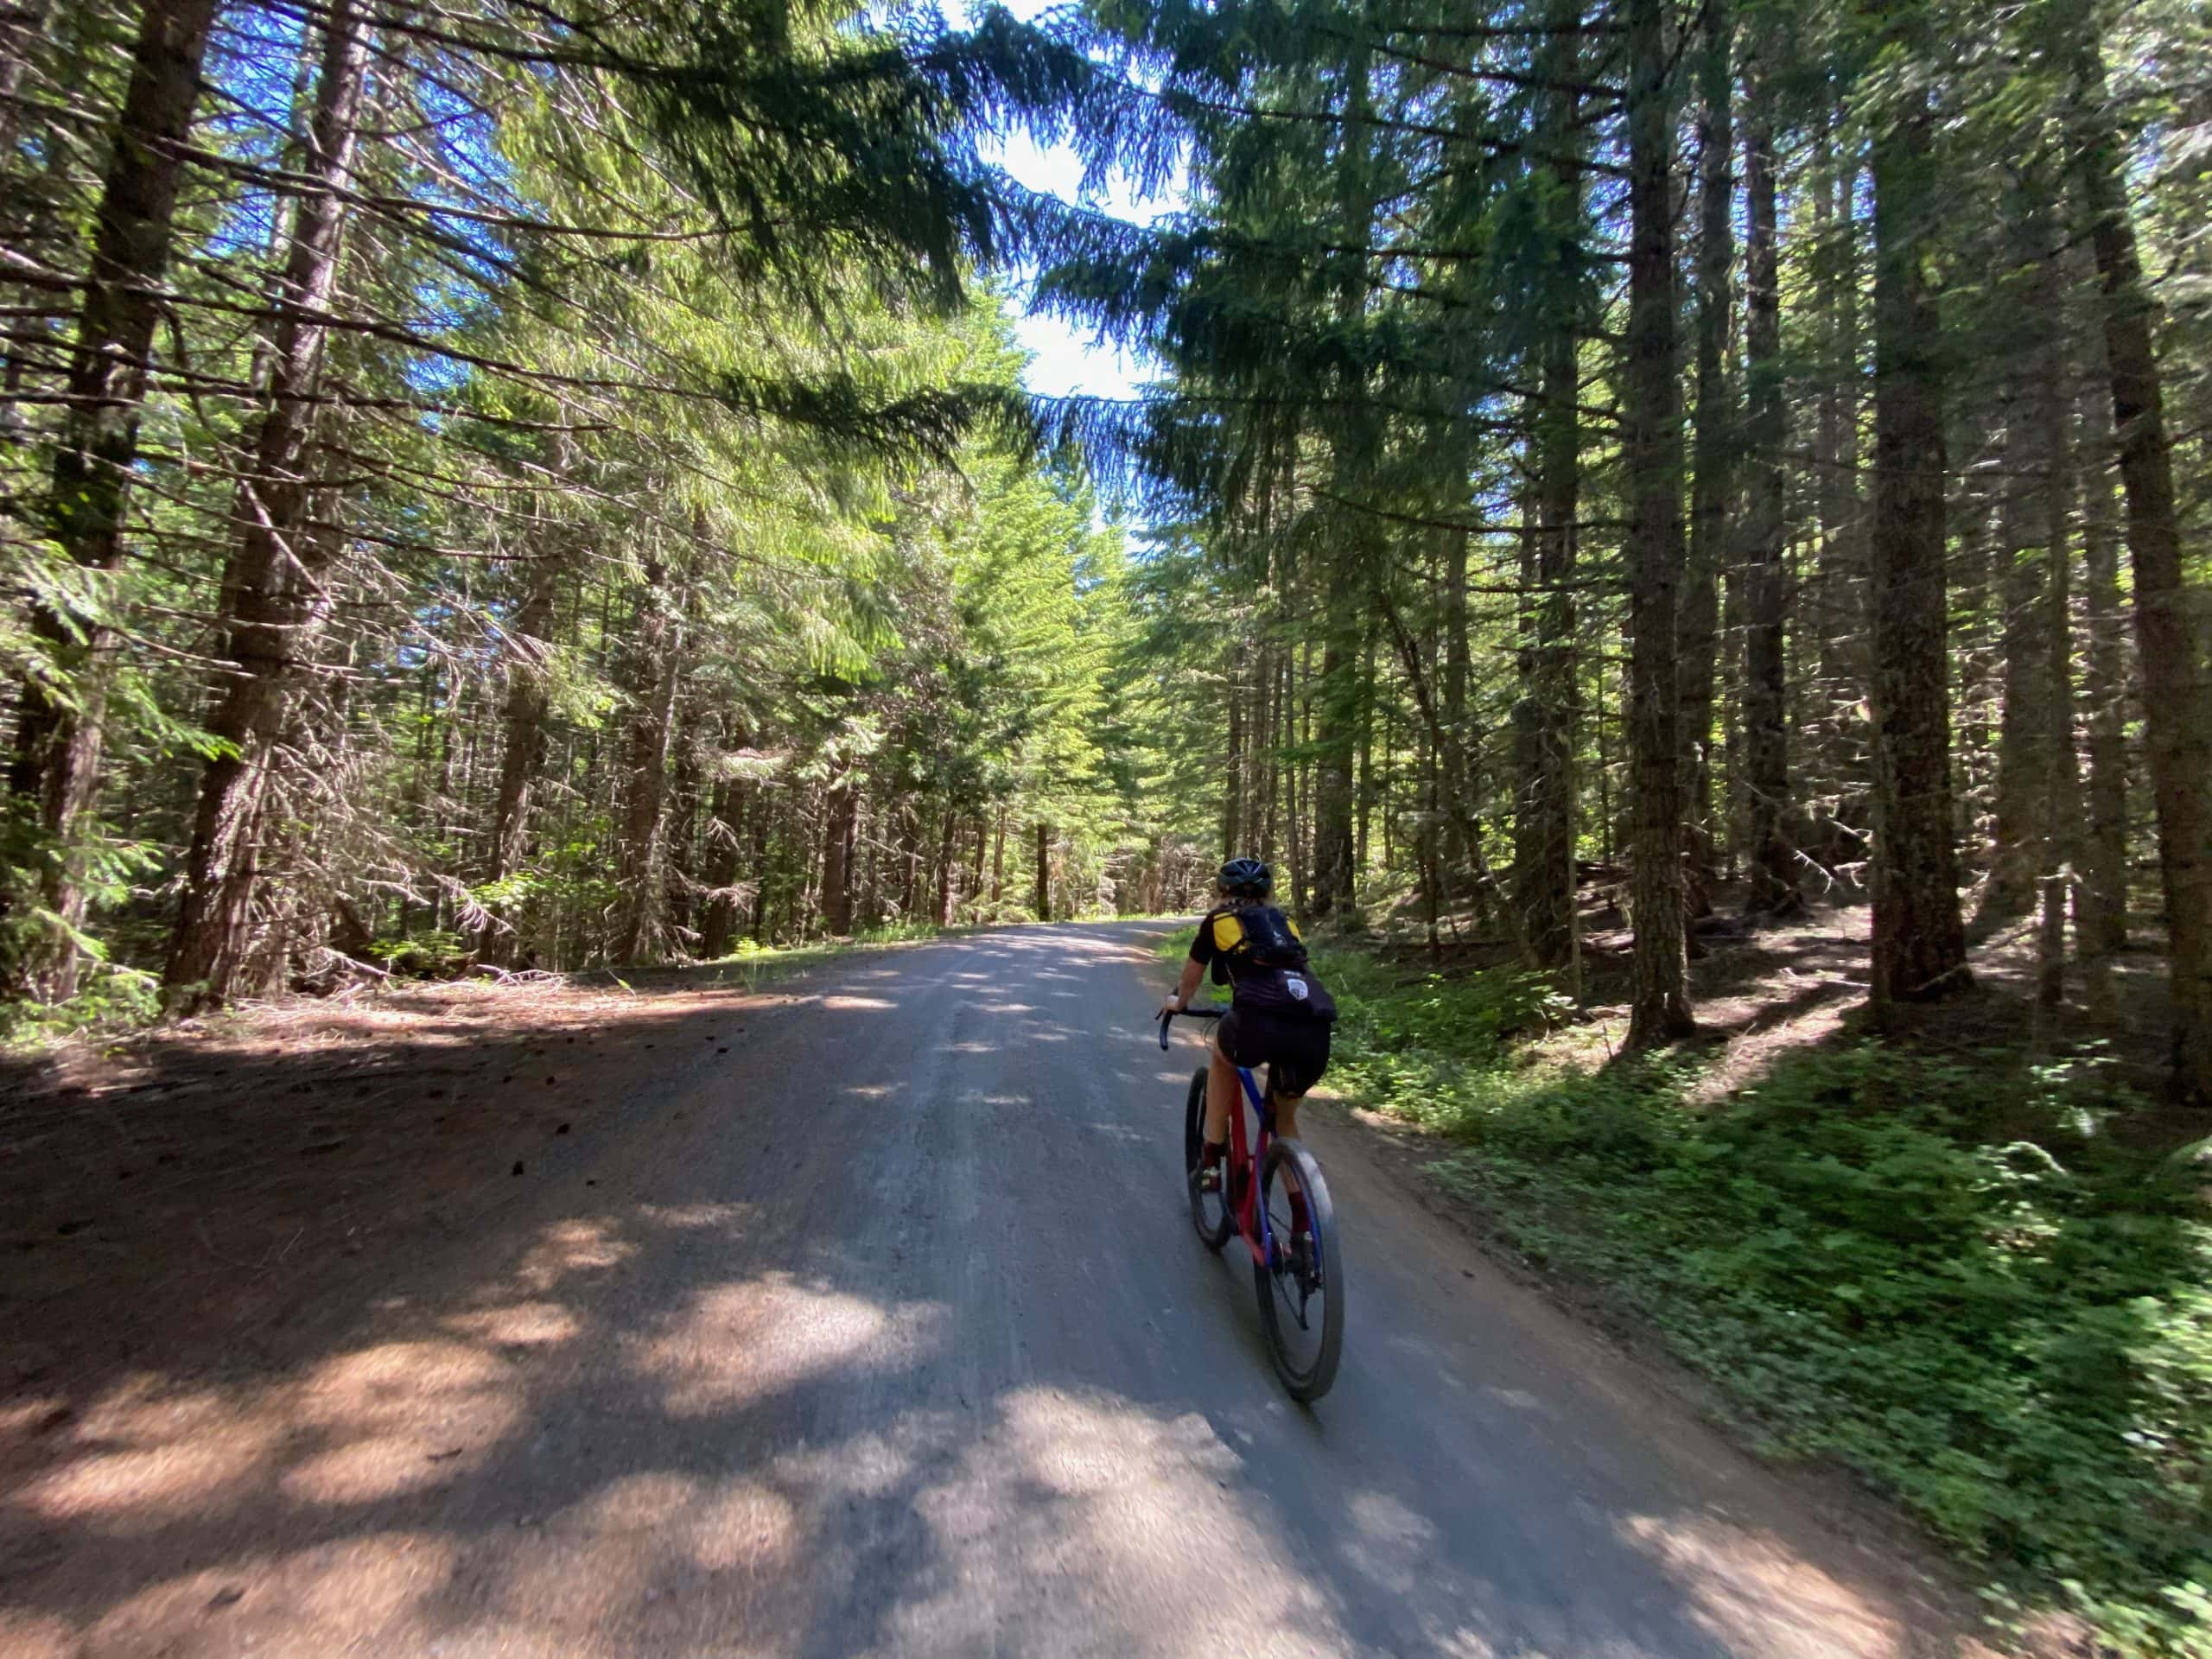 Gravel bike rider on NF 439 leading to Warner Ridge Lookout in the Willamette National Forest.